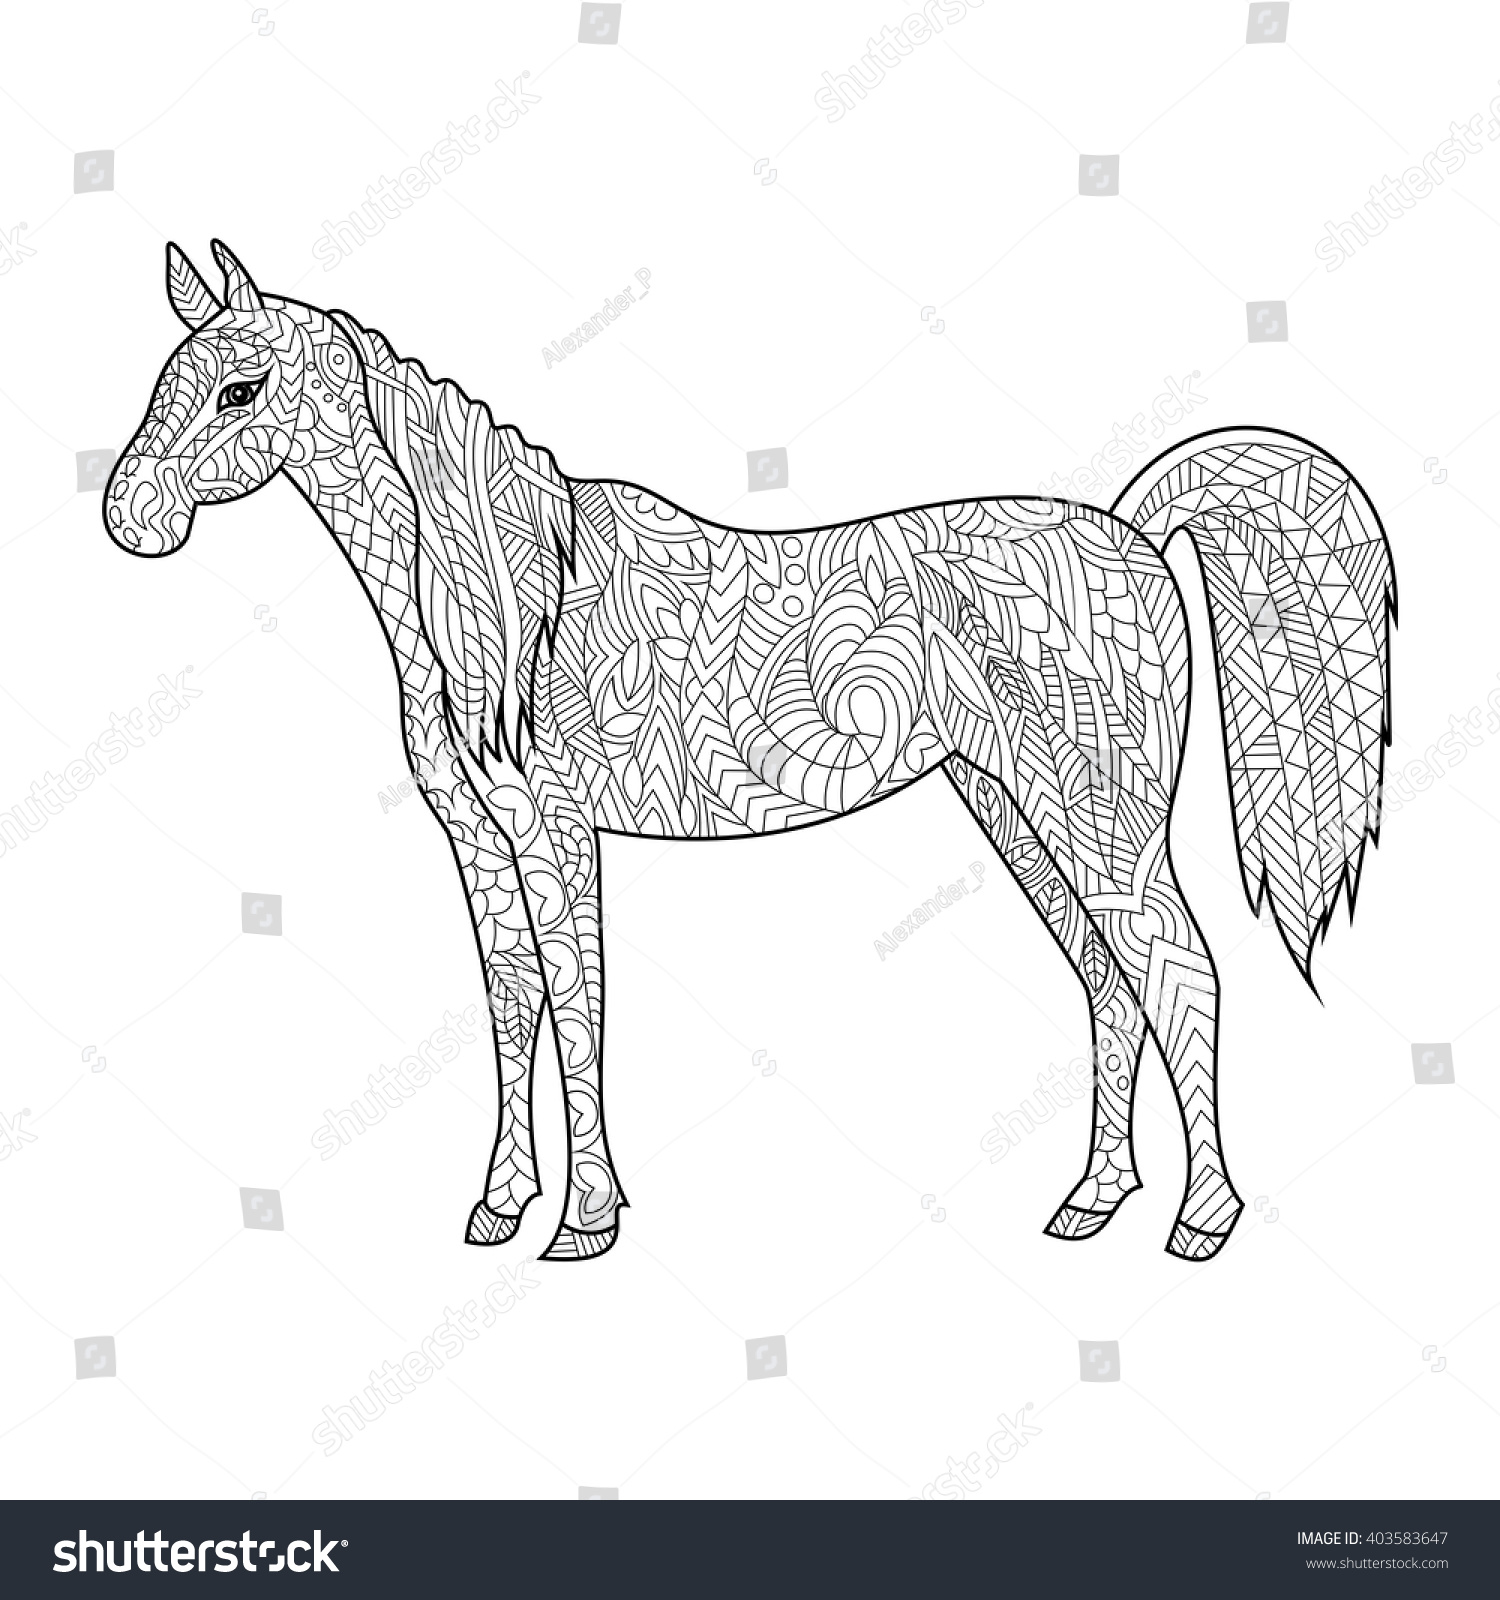 Horse Animal Coloring Book For Adults Vector Illustration Anti Stress Adult